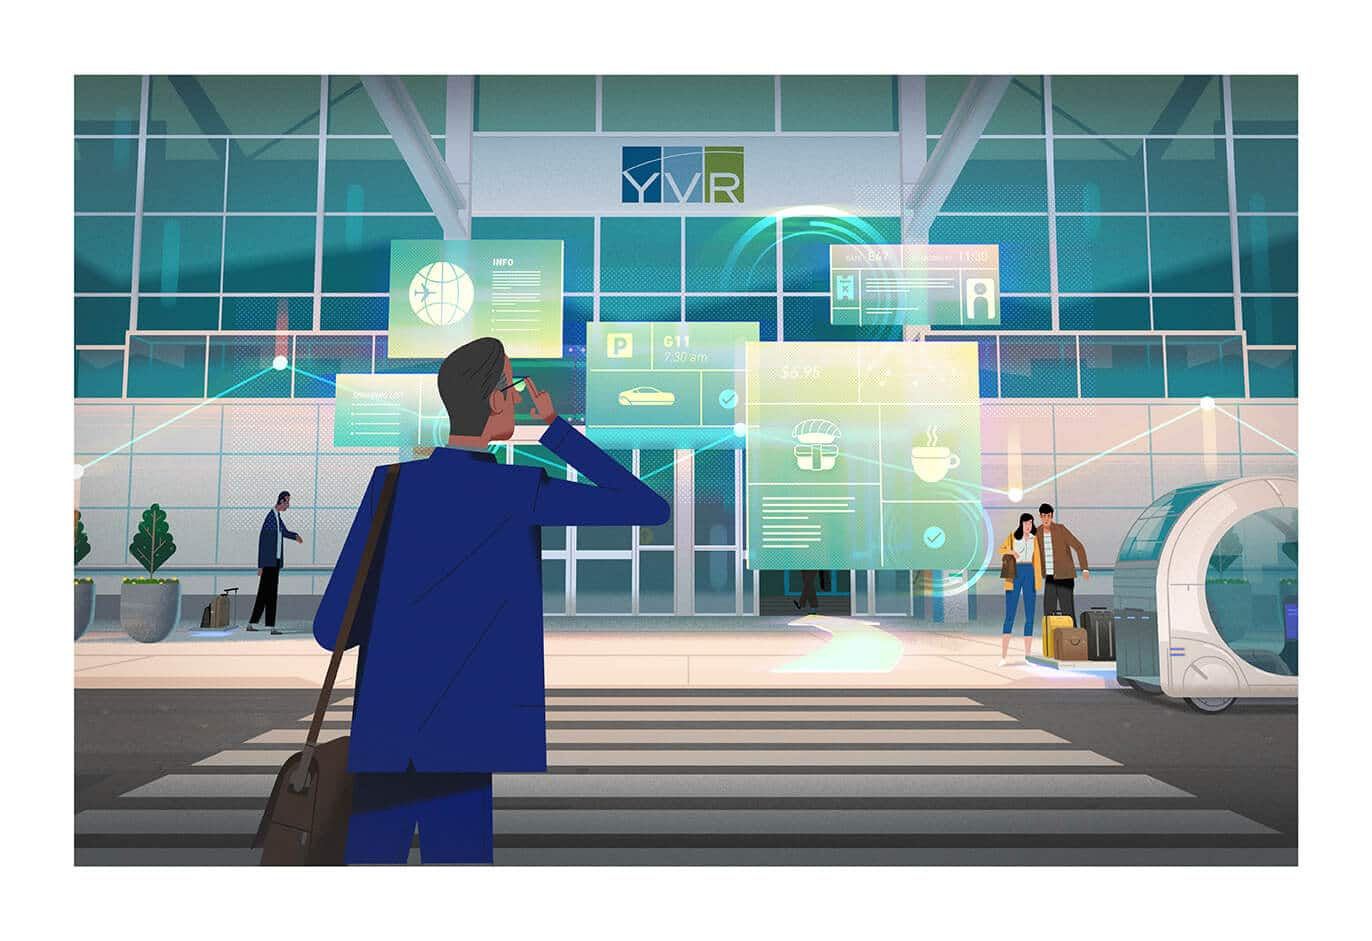 YVR 2037: Welcome to the Airport of the Future